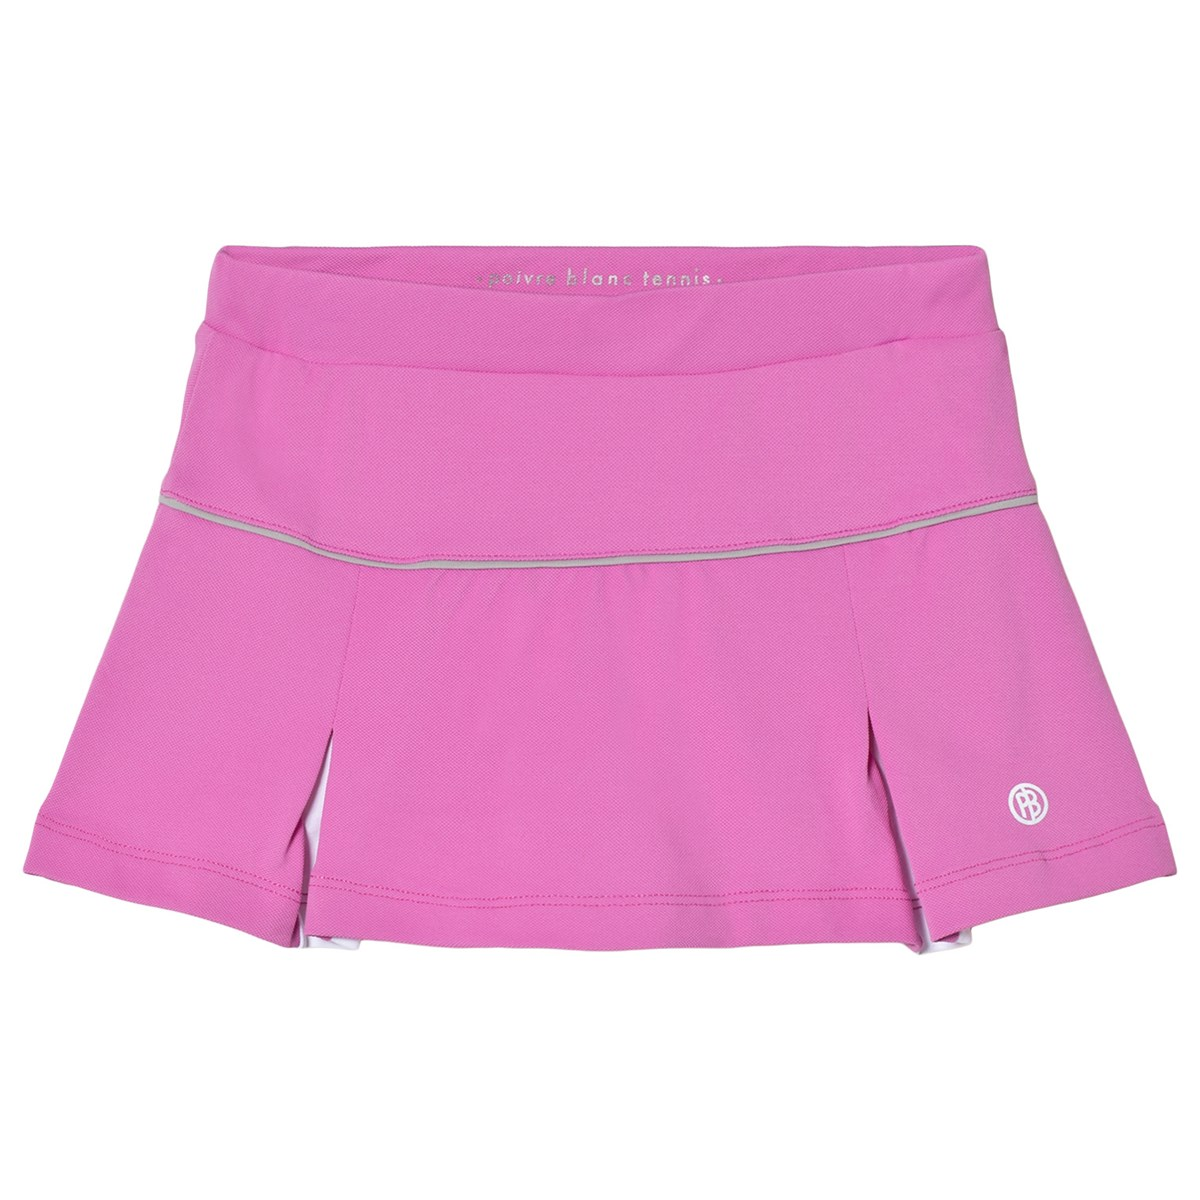 promo code 26d75 81a25 poivre blanc pink with white inverted pleat tennis skort